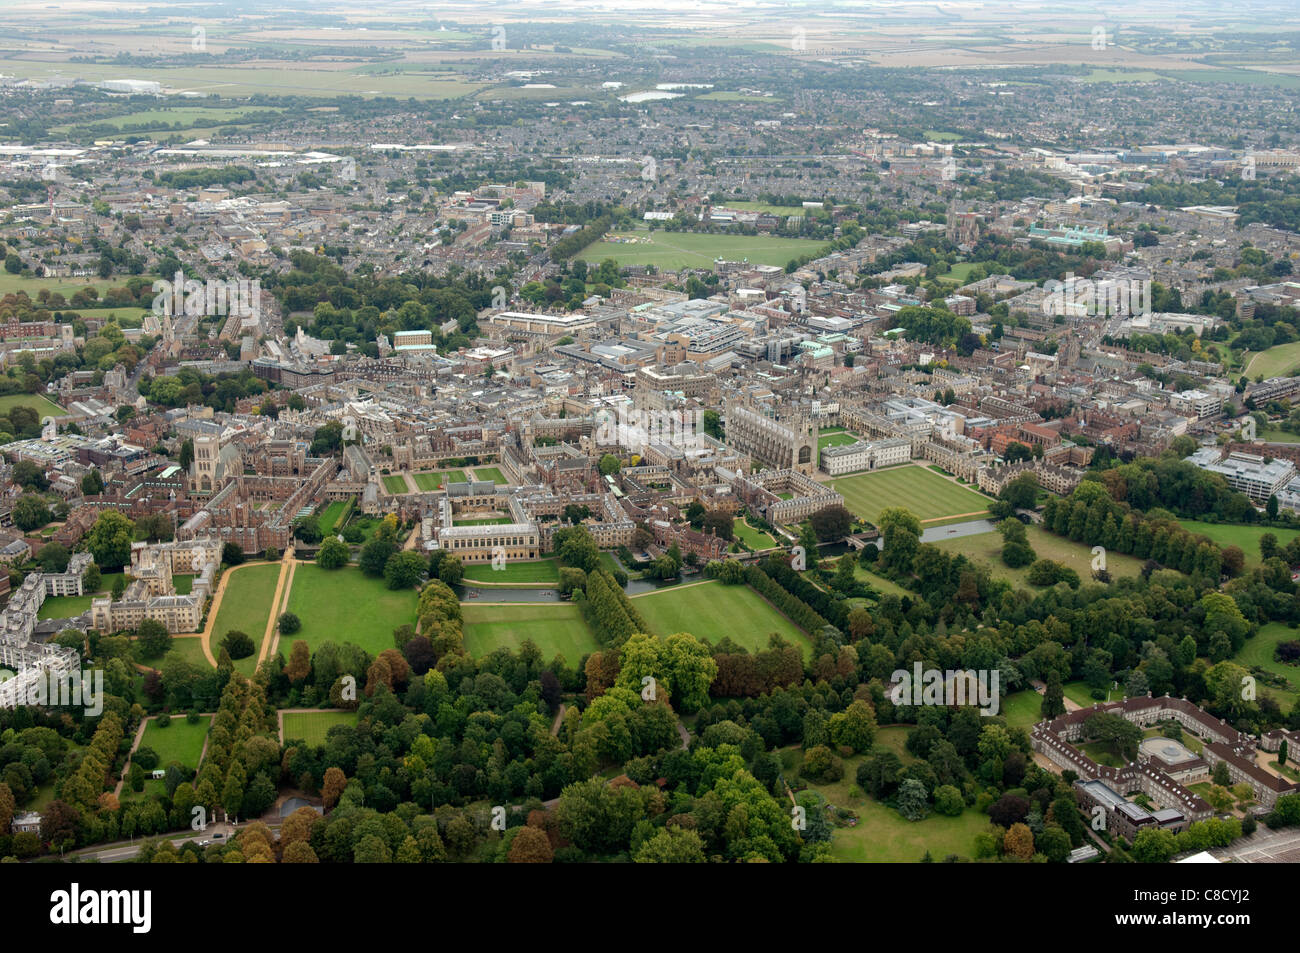 The City of Cambridge England from the air - Stock Image